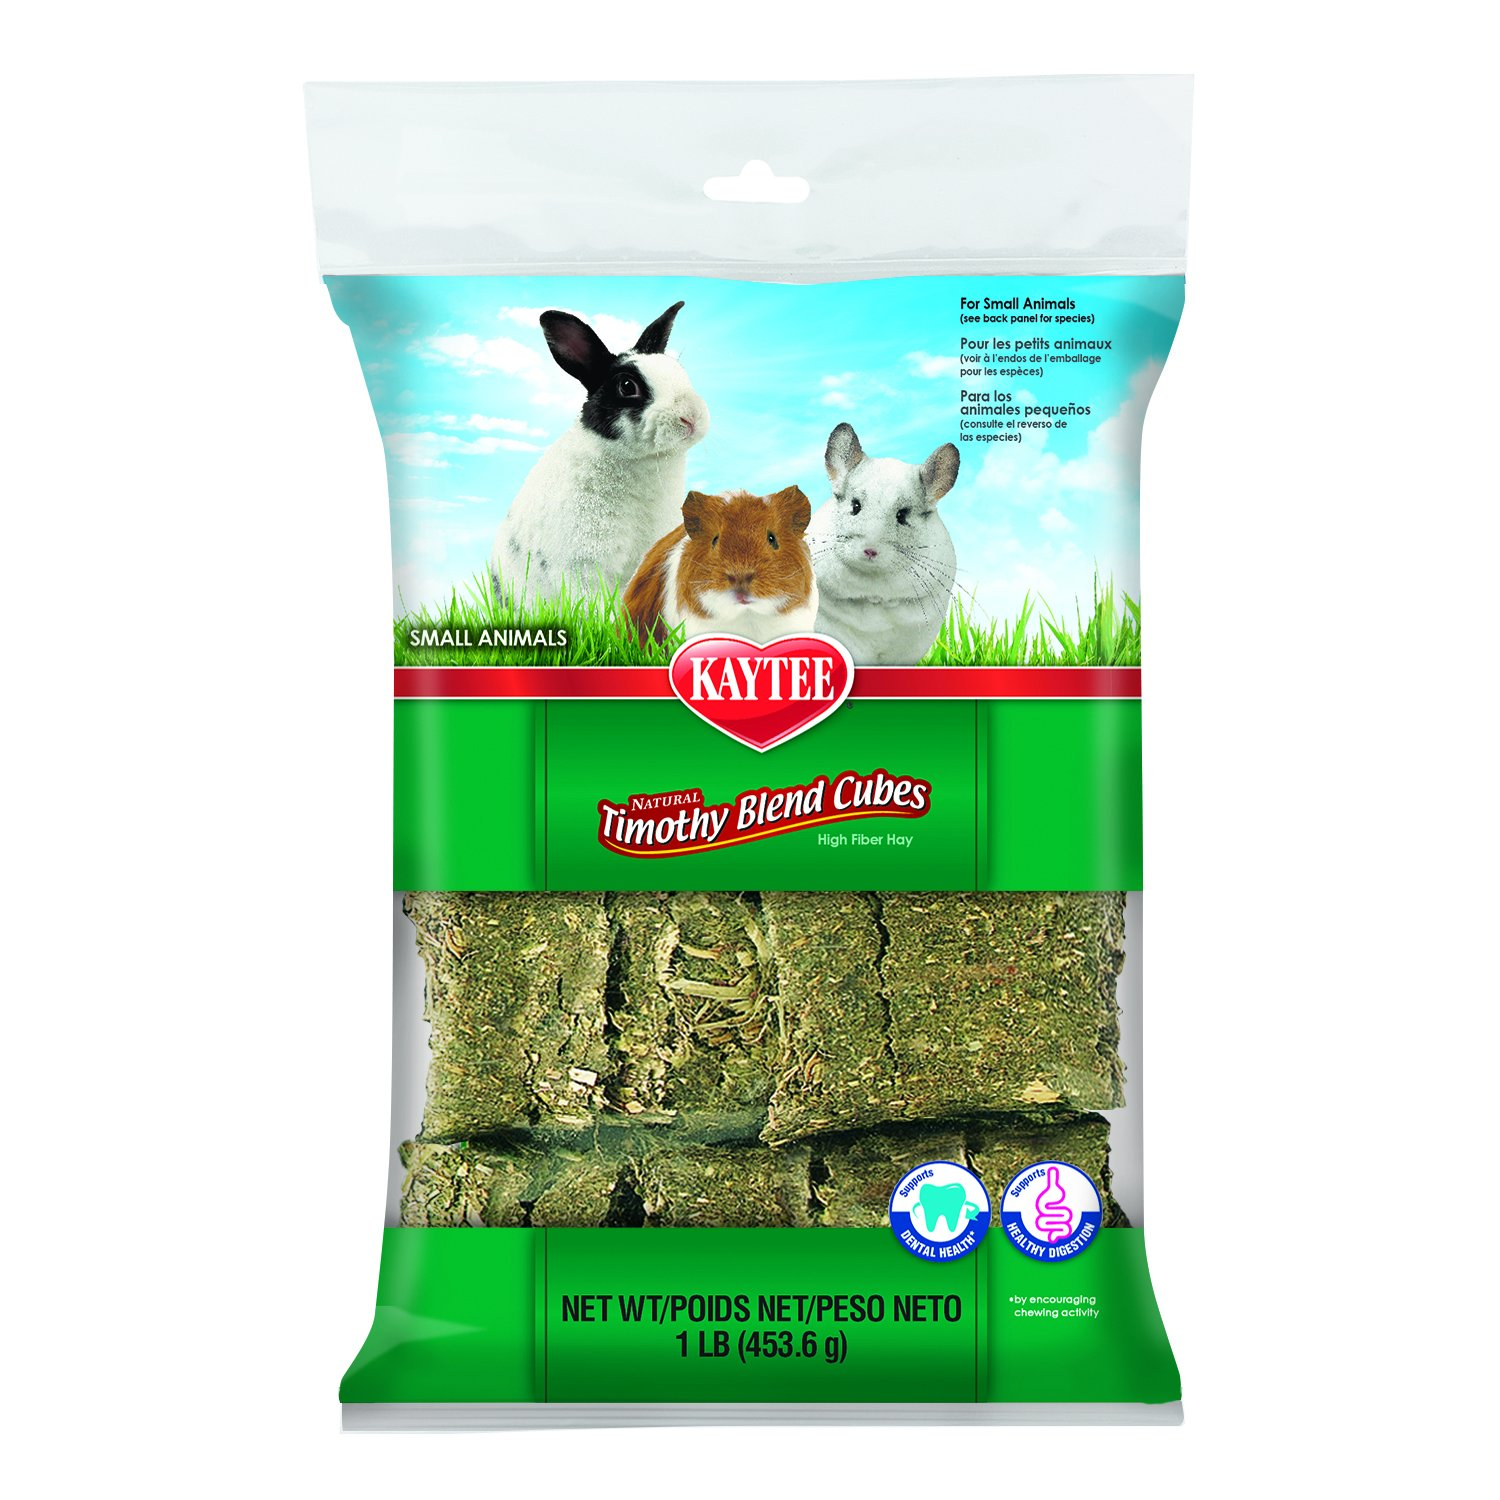 Kaytee Natural Timothy Blend Cubes